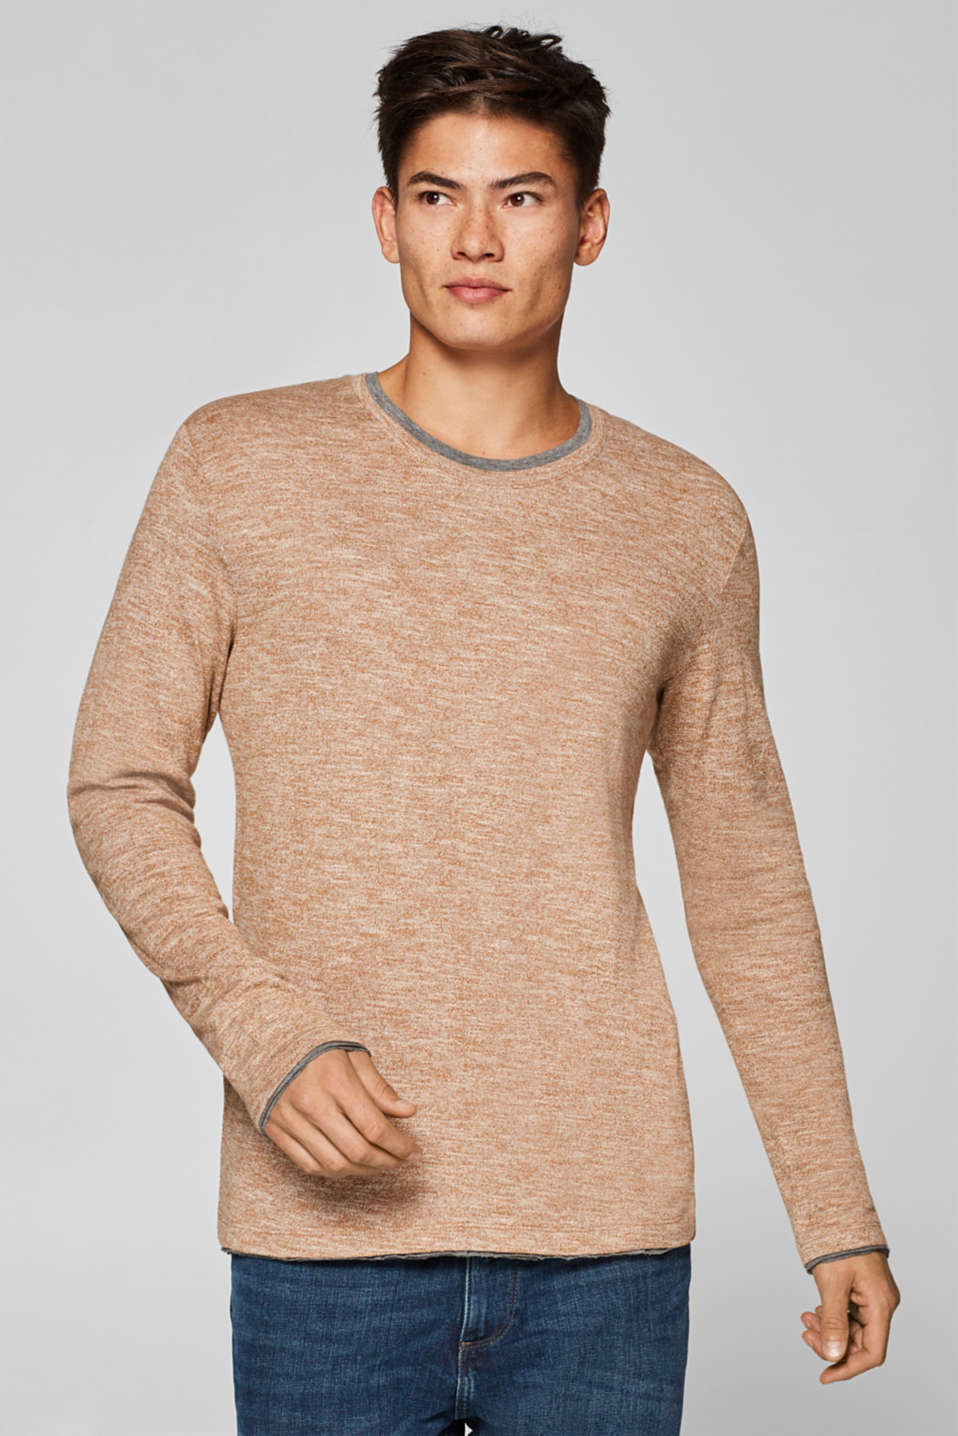 edc - Jersey long sleeve top with organic cotton